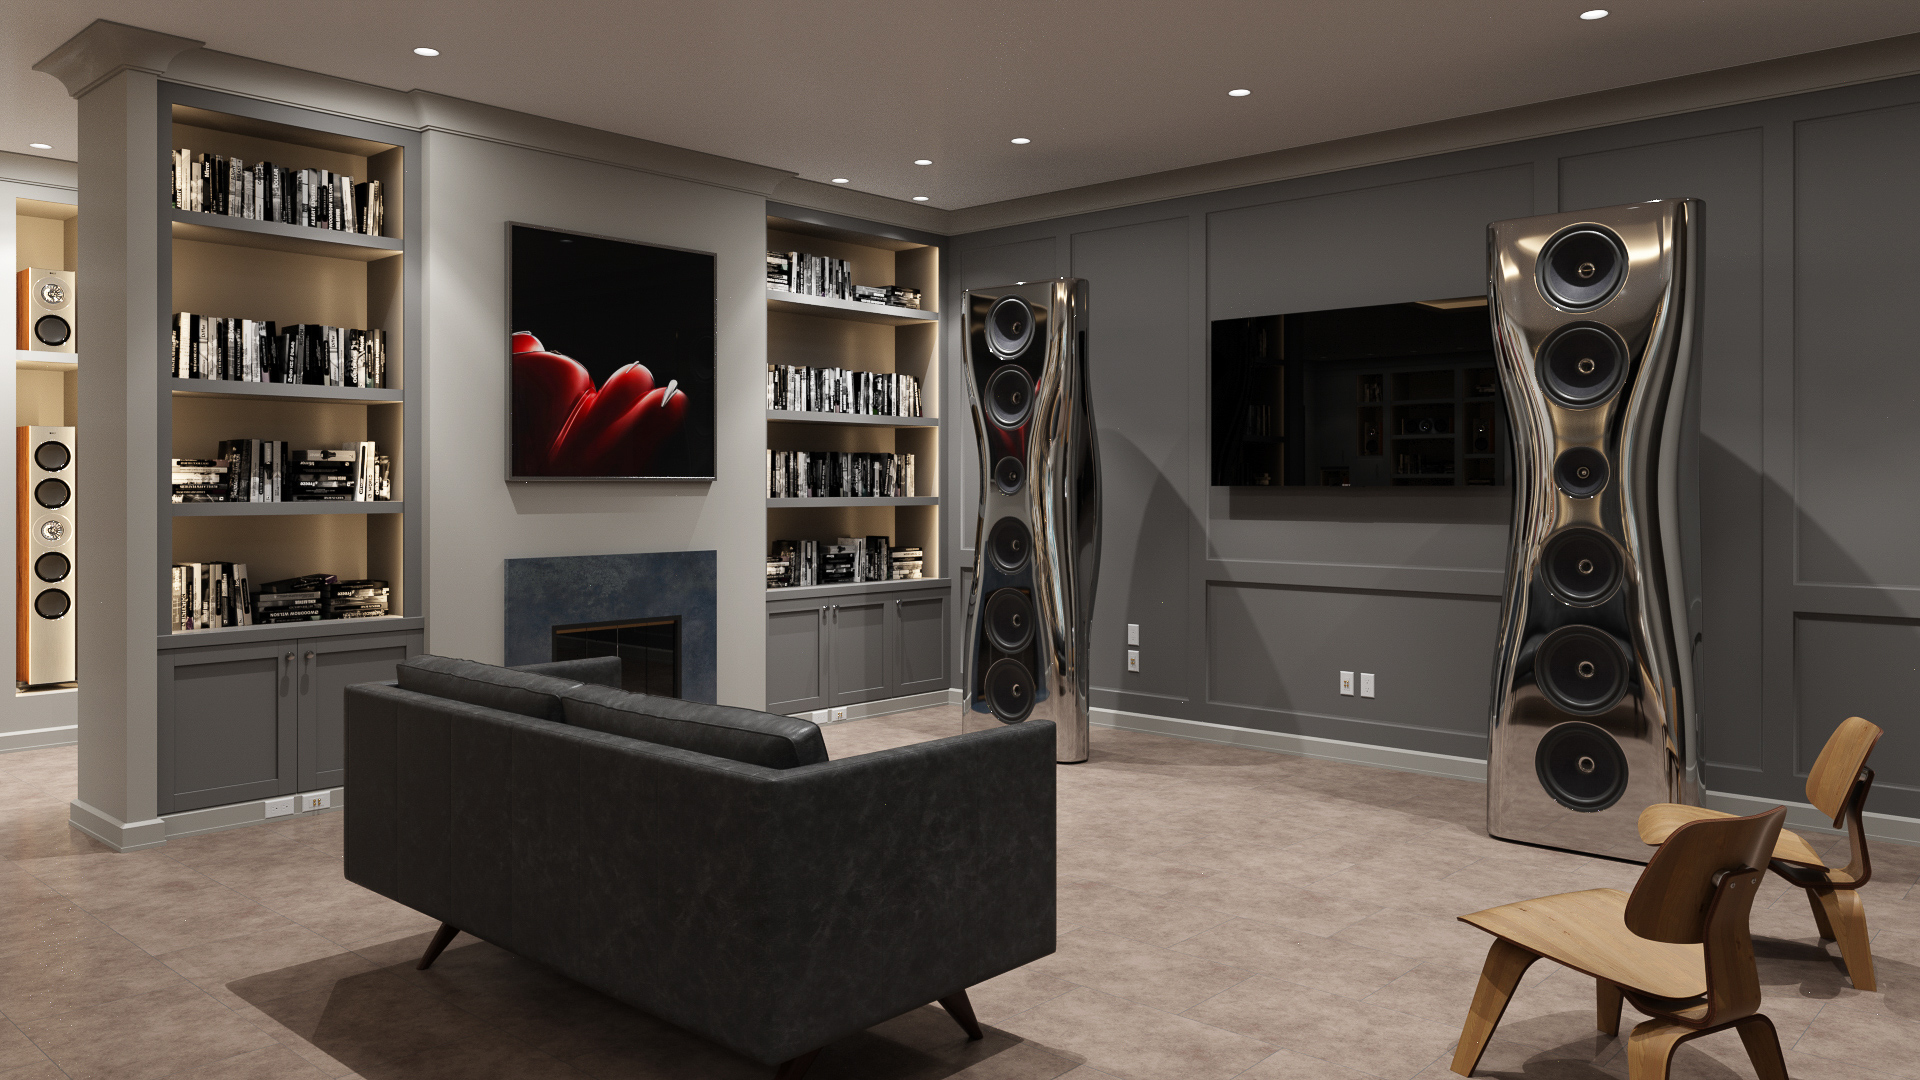 7 Tips to Improve Photo Realistic Rendering